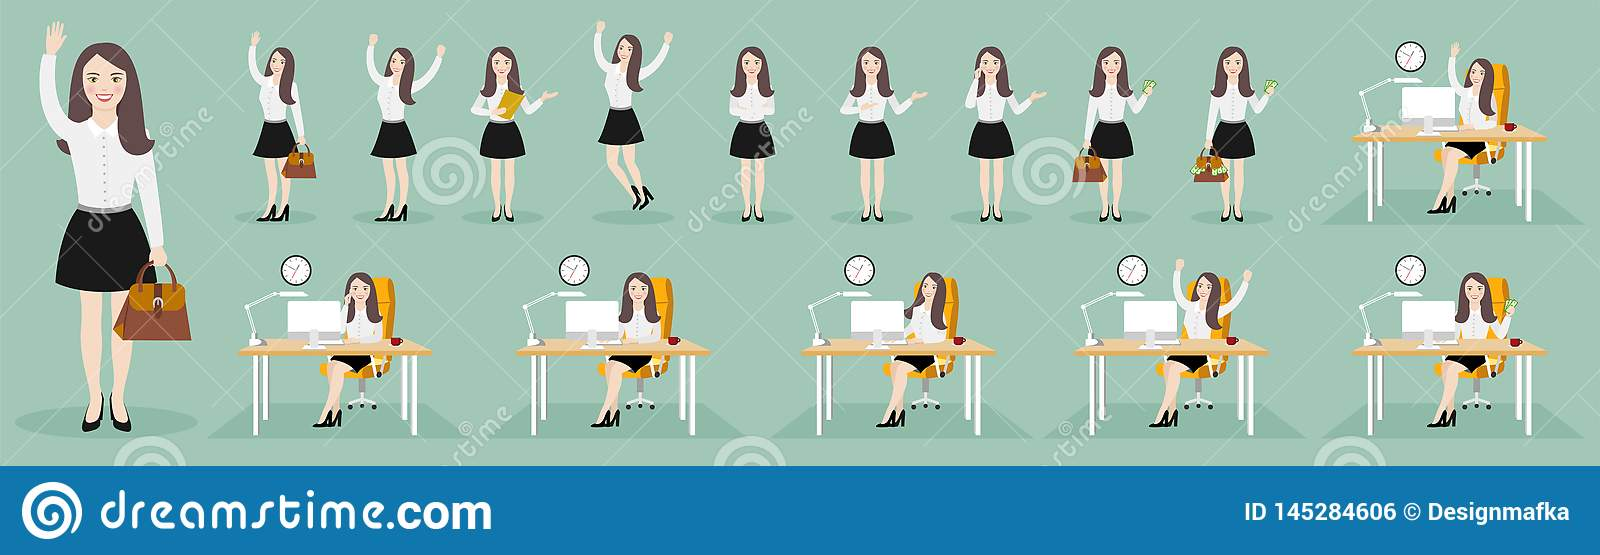 Flat illustrations of business woman character in various poses.